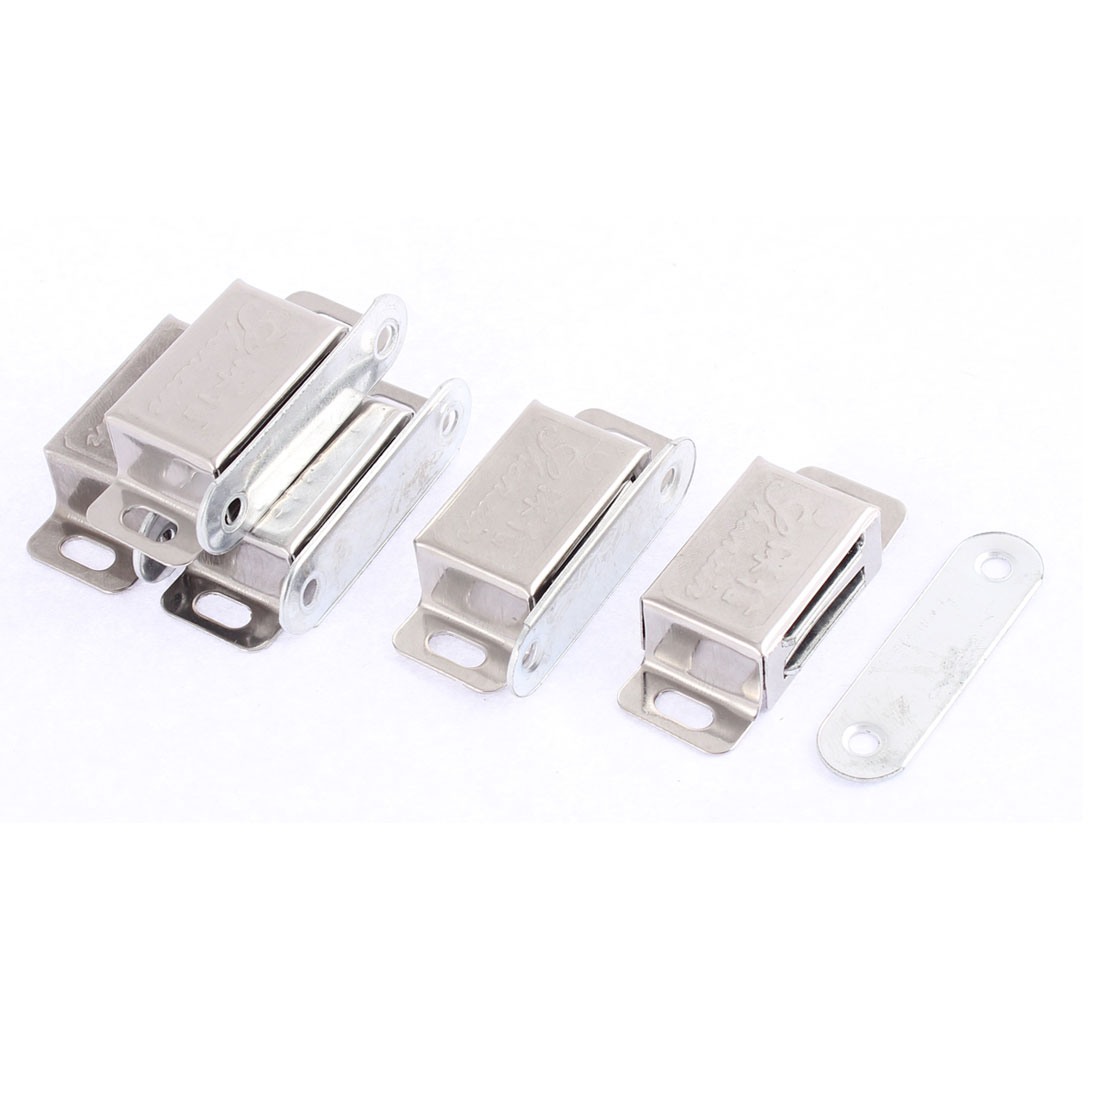 5 Pcs Stainless Steel Cupboard Furniture Magnetic Catch Door Latch 48mm x 21mm